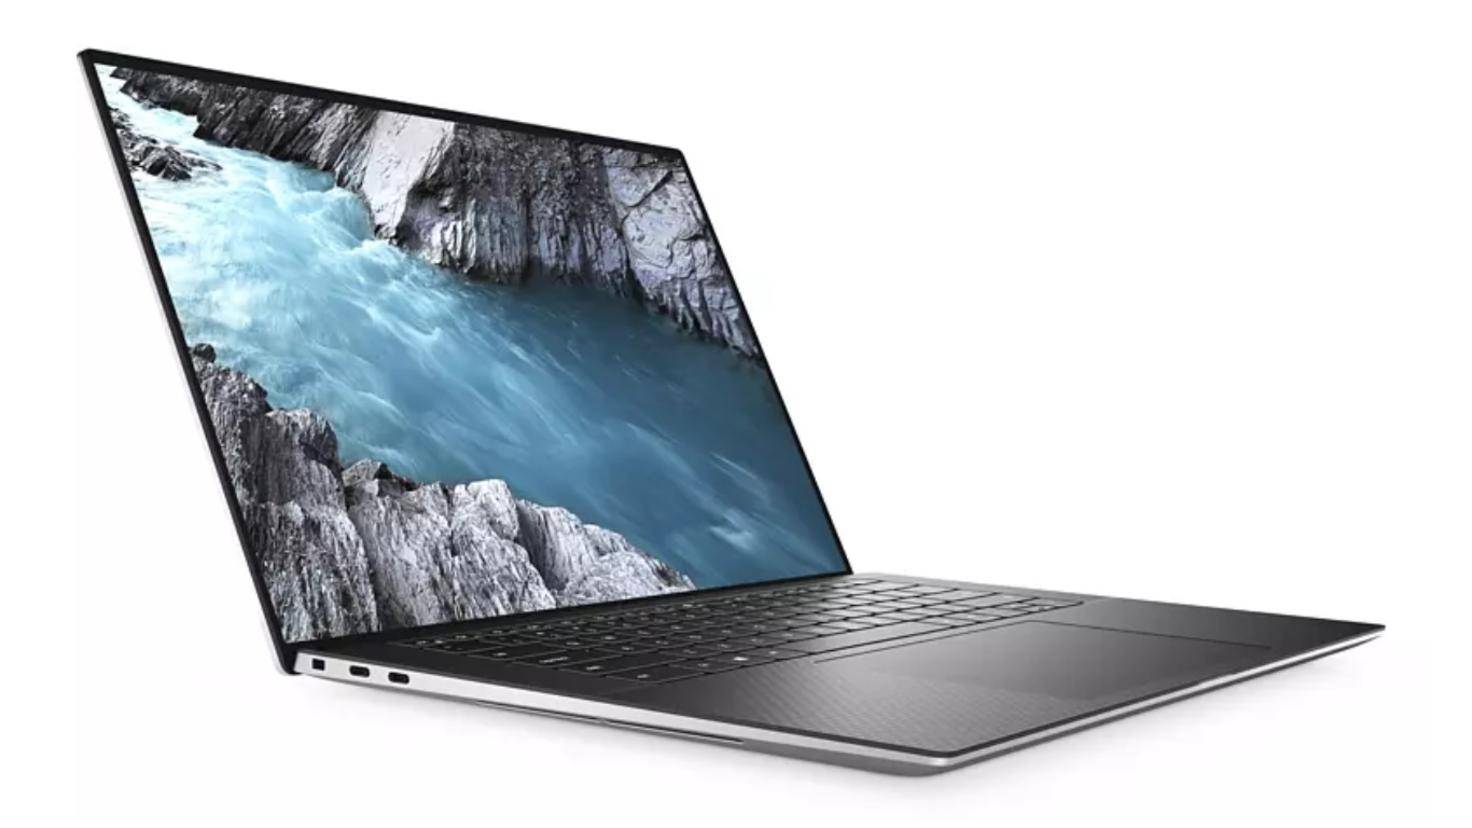 dell-xps-9500-laptop-notebook